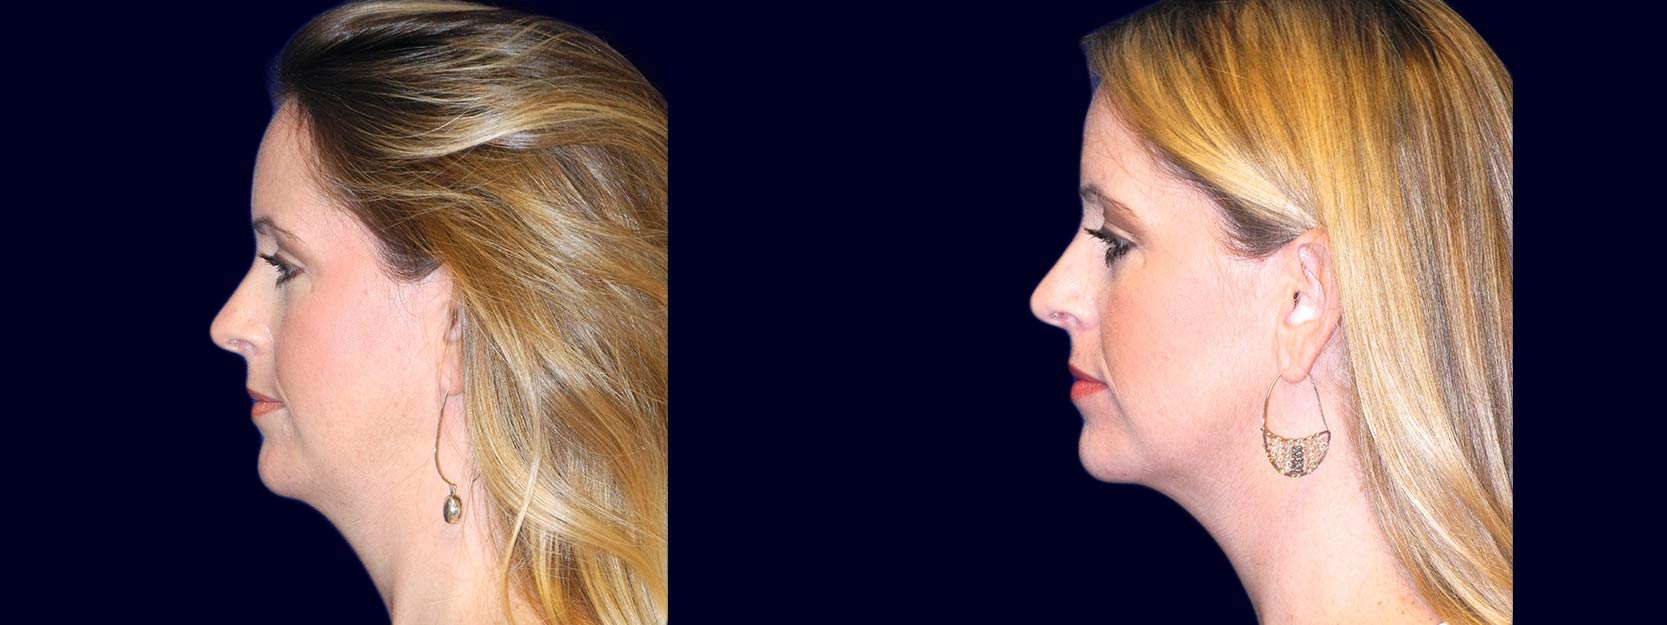 Left Profile View - Chin Liposuction